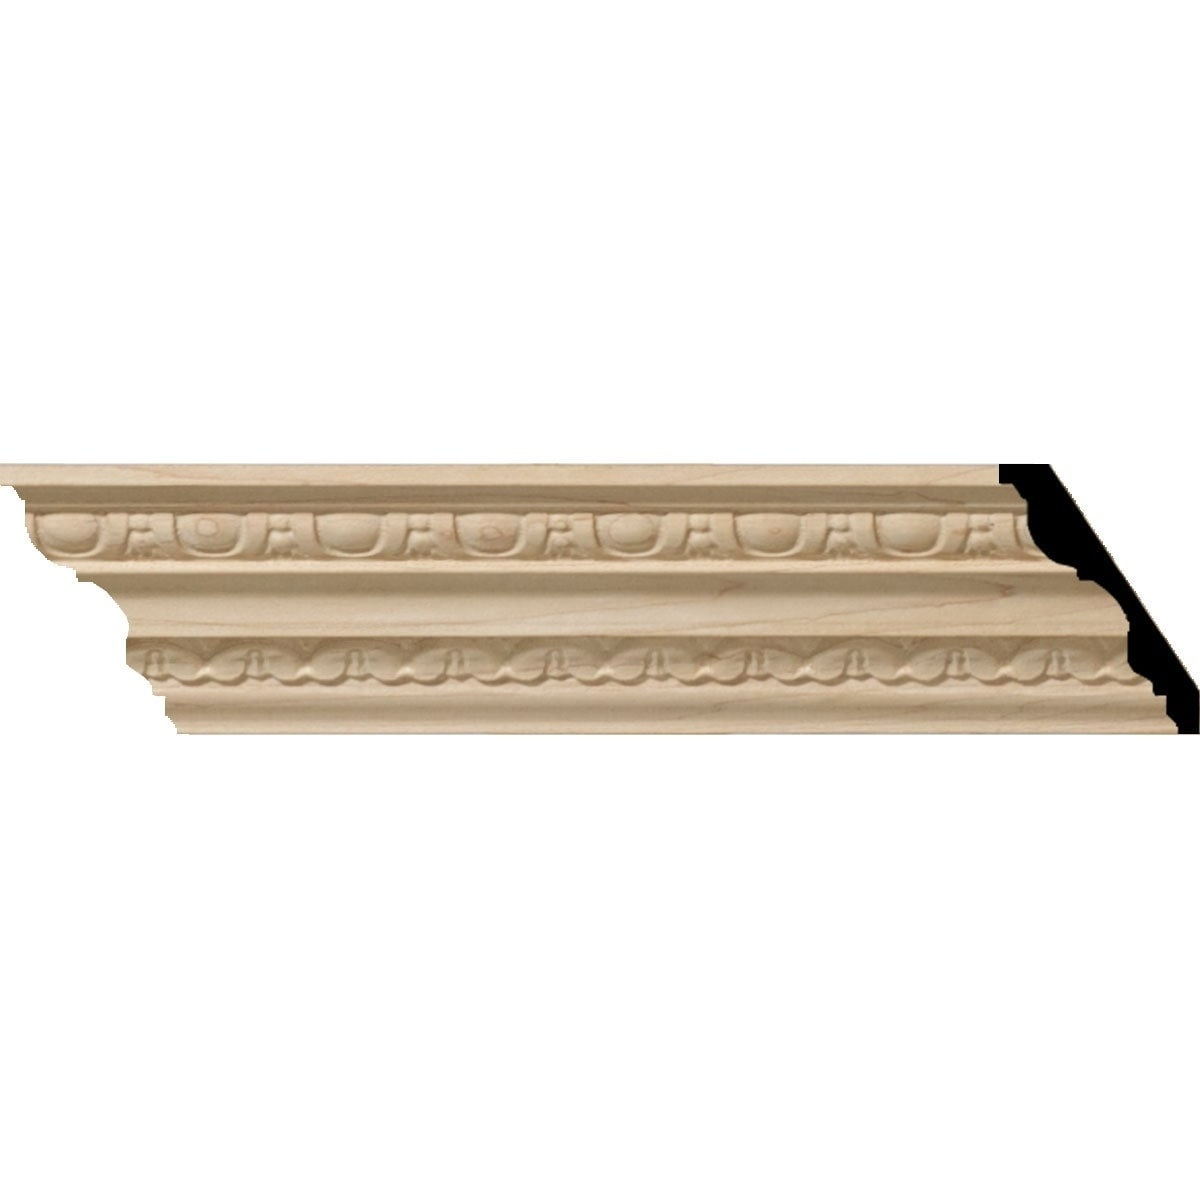 3H x 2 1/4P x 3 1/4F x 94 1/2L Bedford Wood Crown Moulding (Alder - 8-Pack)